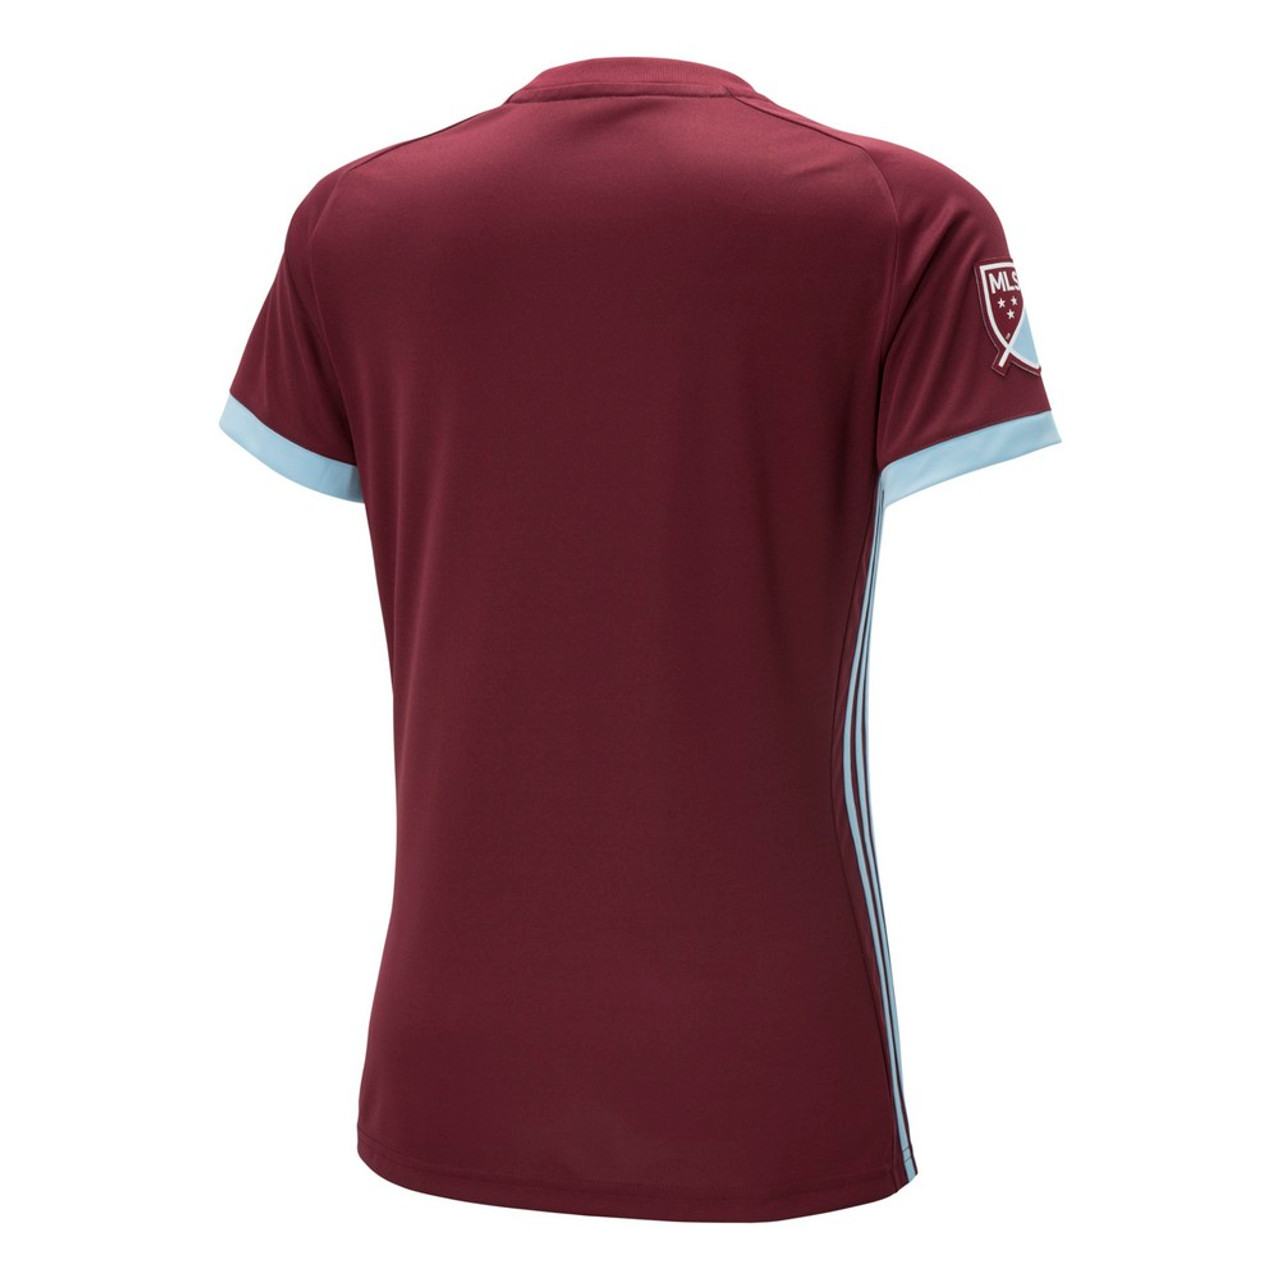 Colorado Rapids Women's Jersey Adidas Home Replica Soccer Jersey